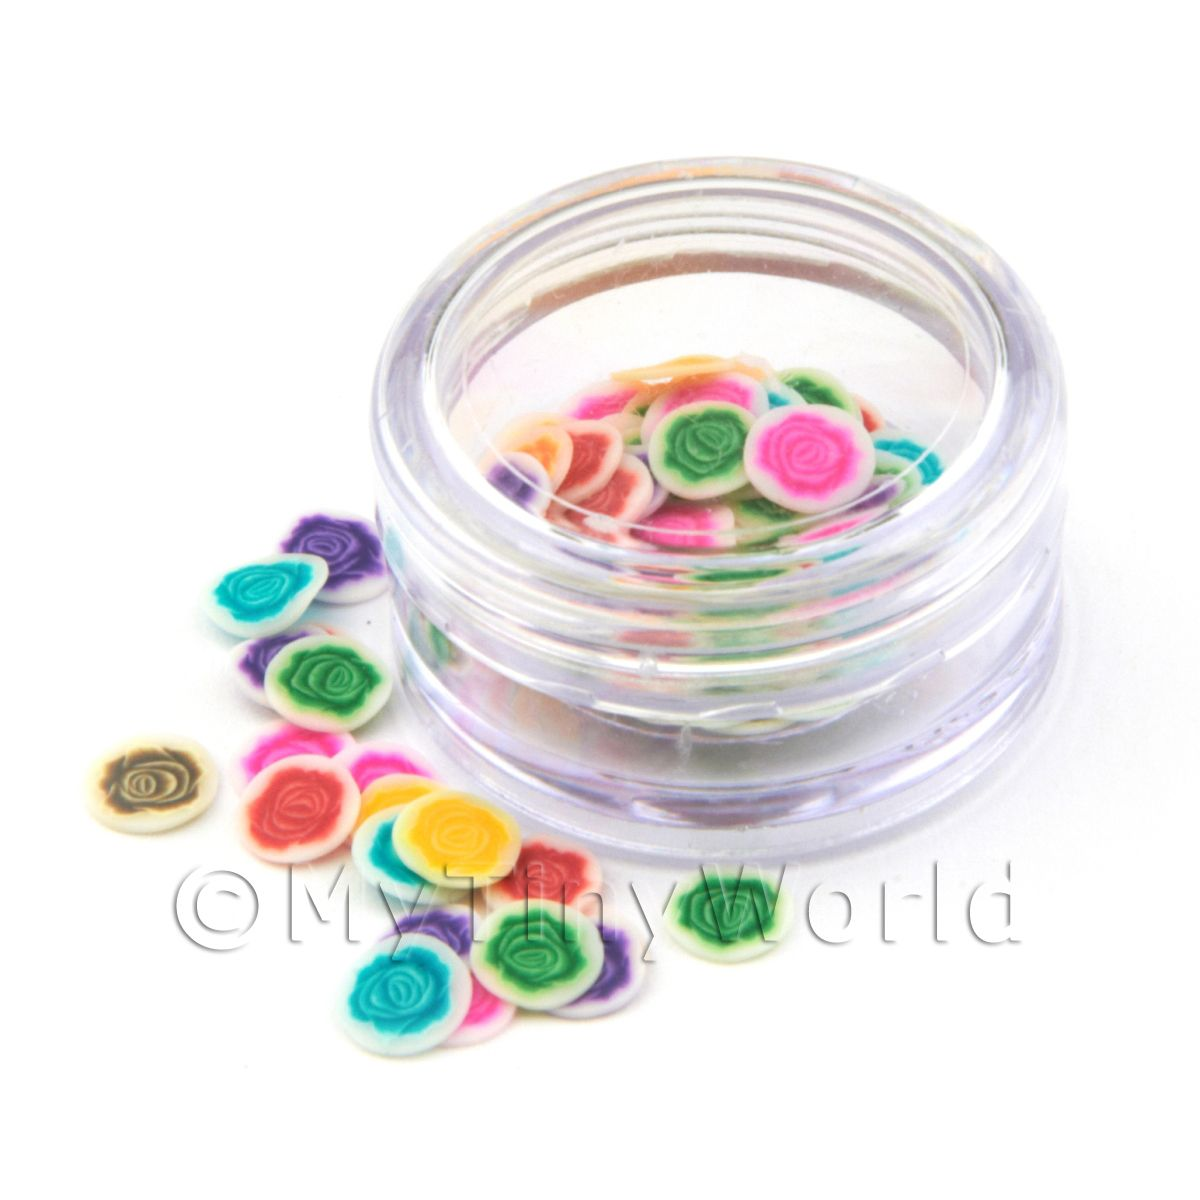 Mixed Roses Nail Art Pot Containing 120 Slices